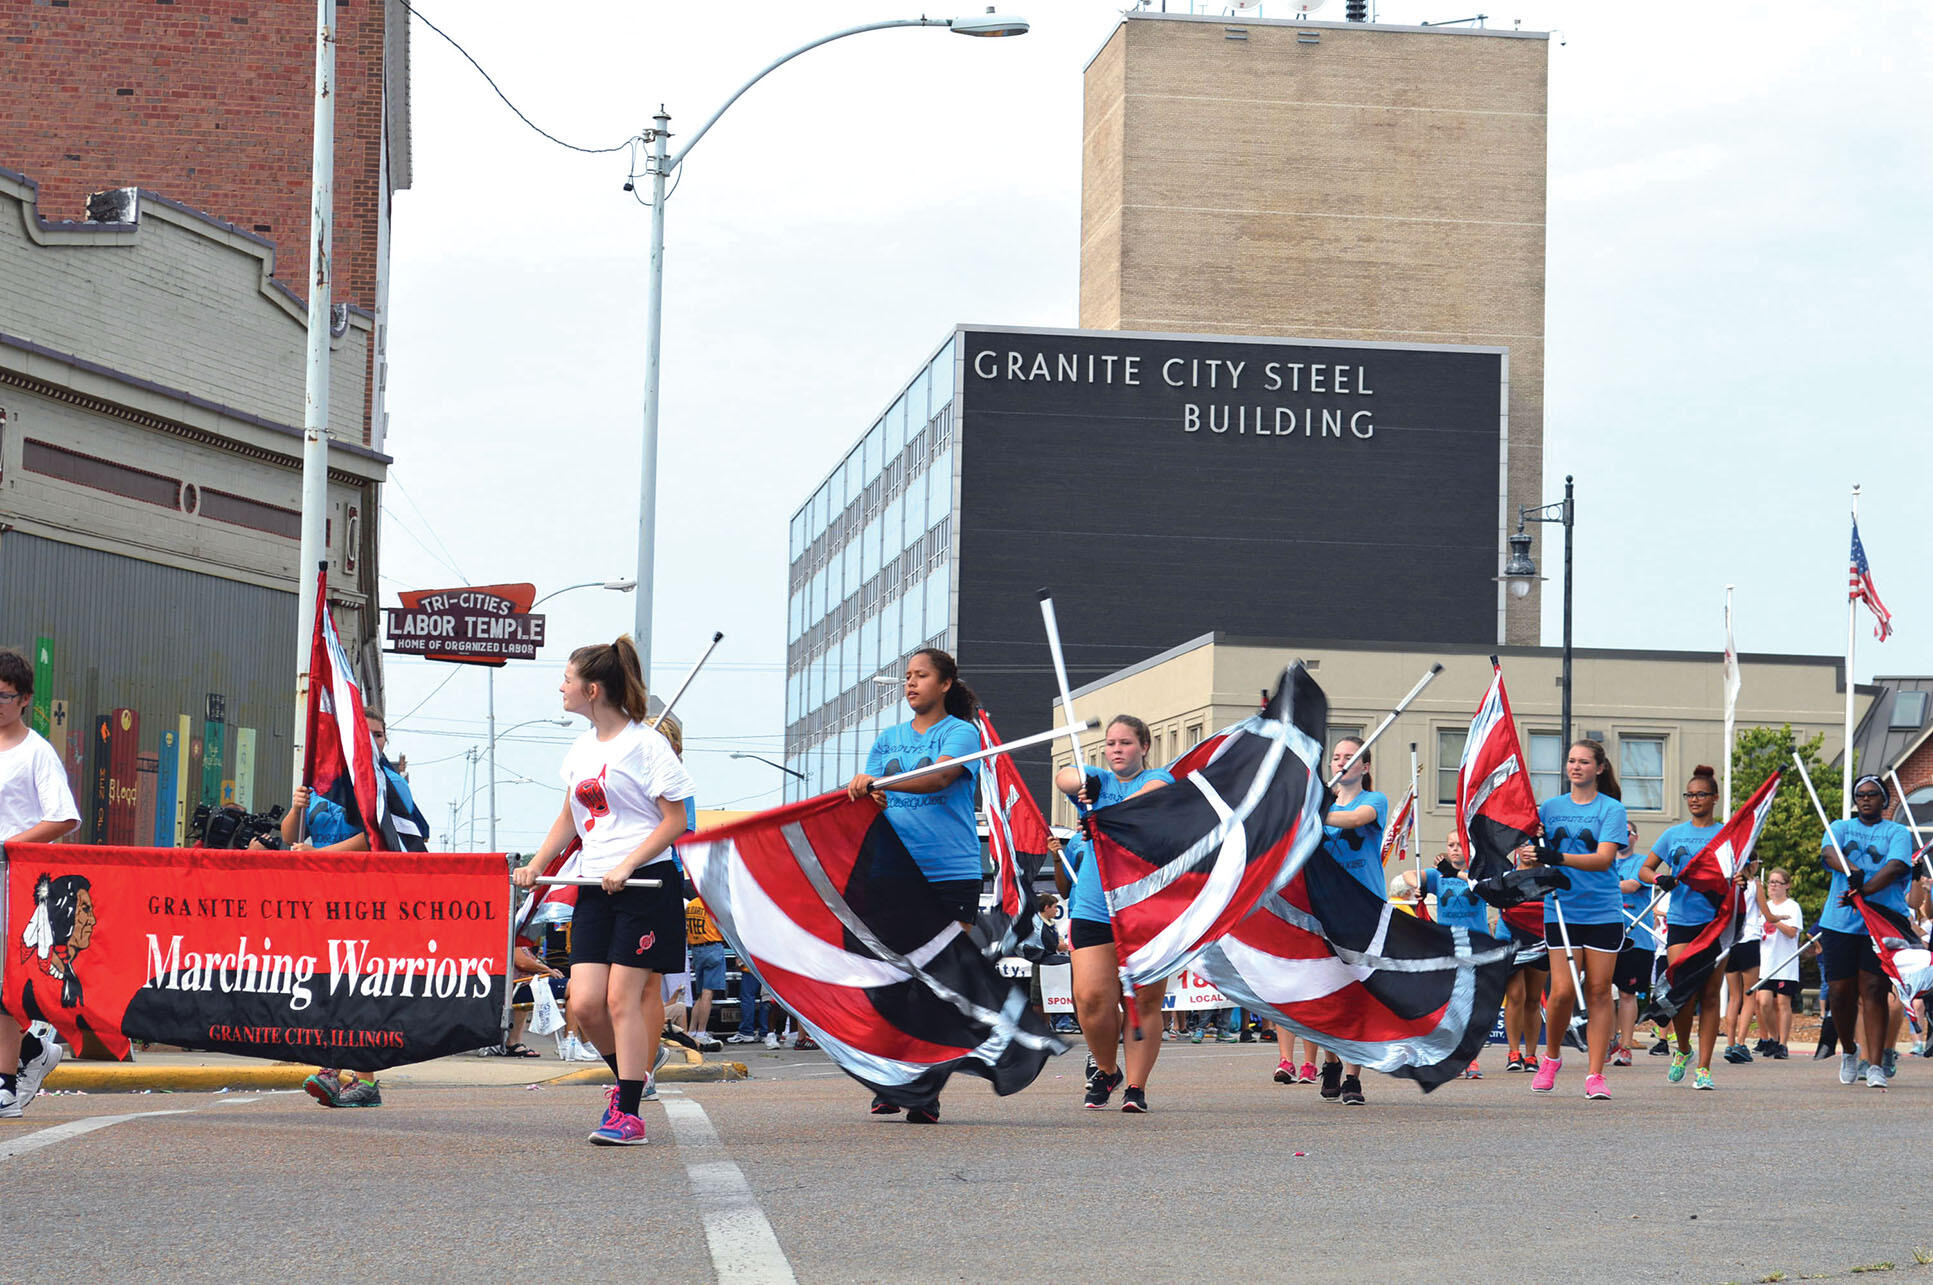 A color guard with flags but no uniforms marches in the 2015 Labor Day parade past the local union hall and the Granite City Steel Building. (Photo by Doug May.)